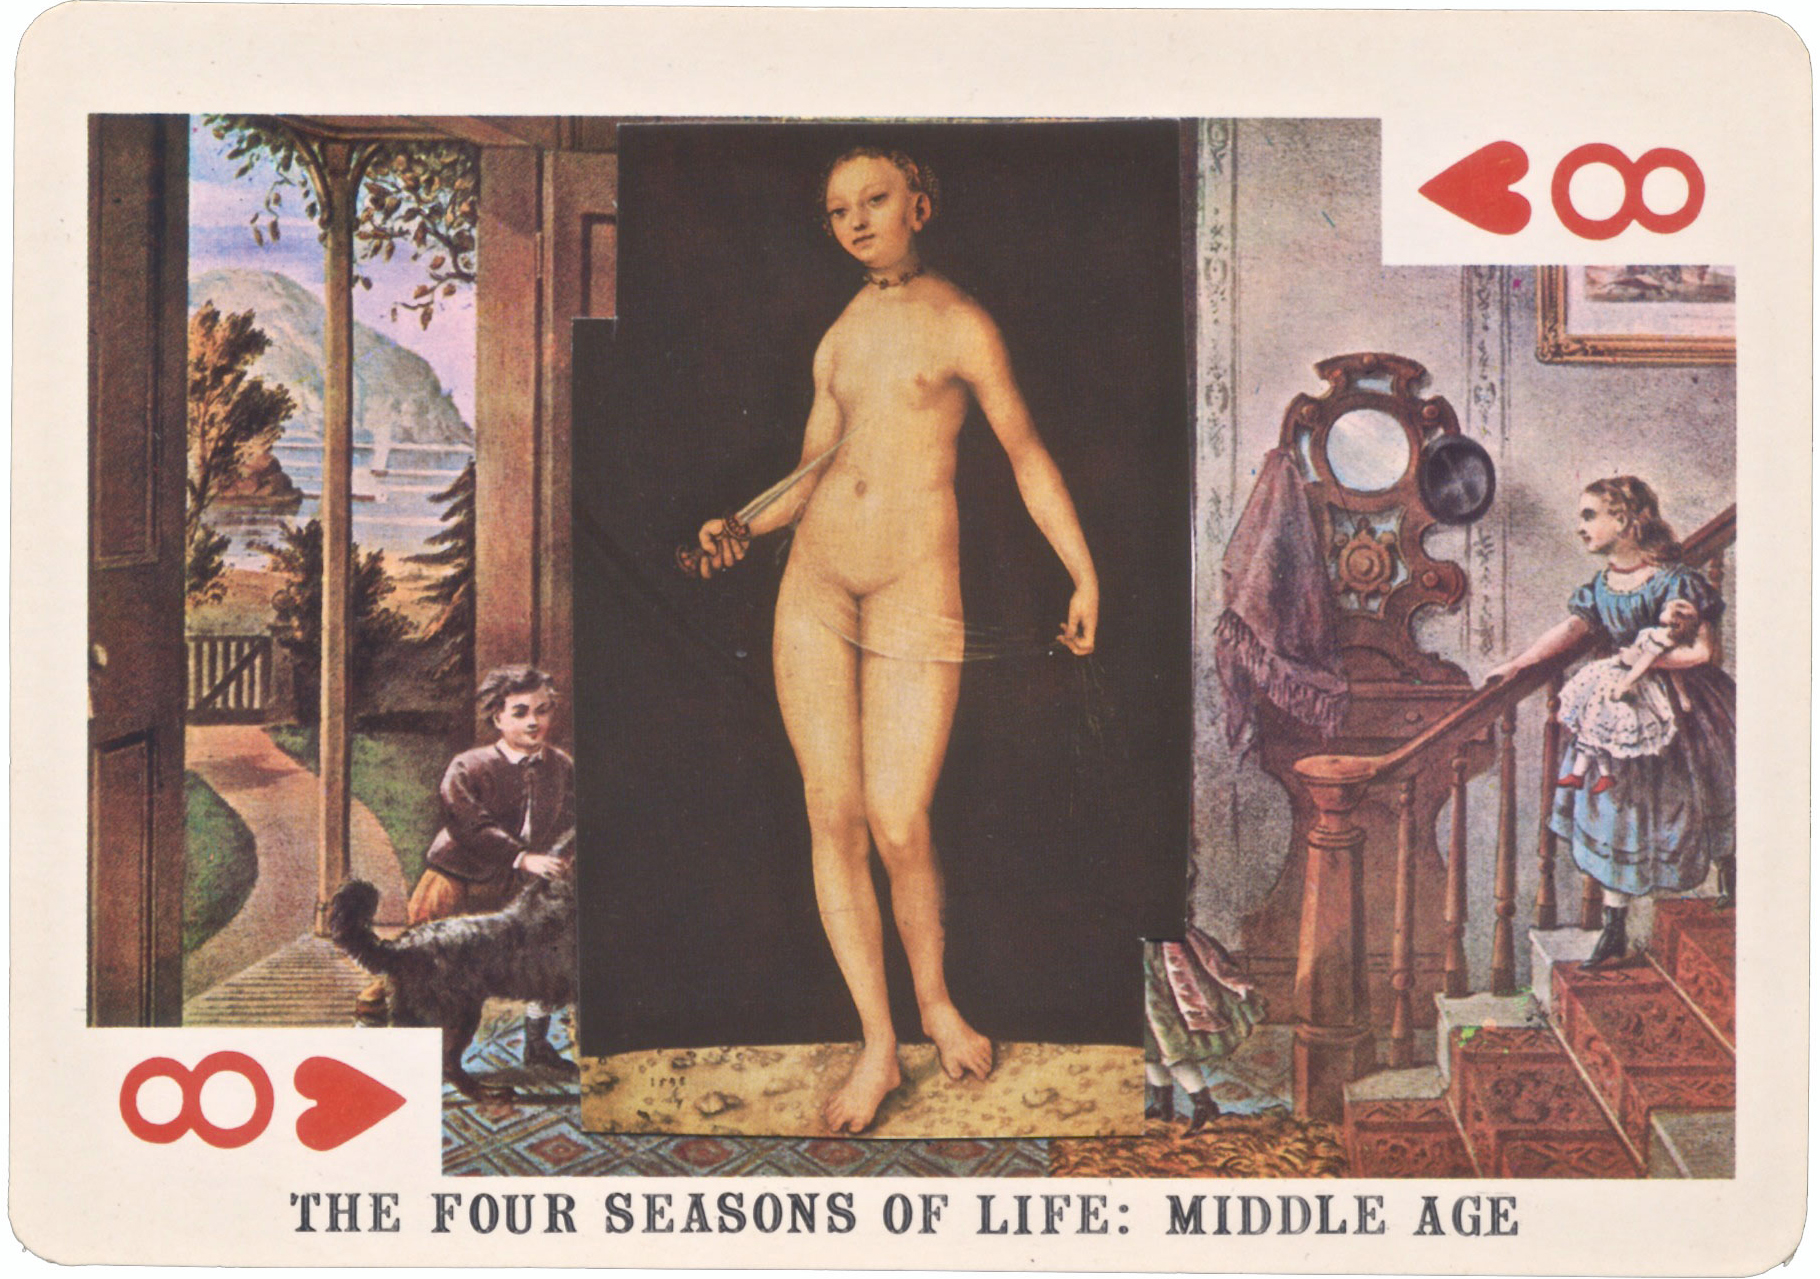 the_four_seasons_of_life_cleaver